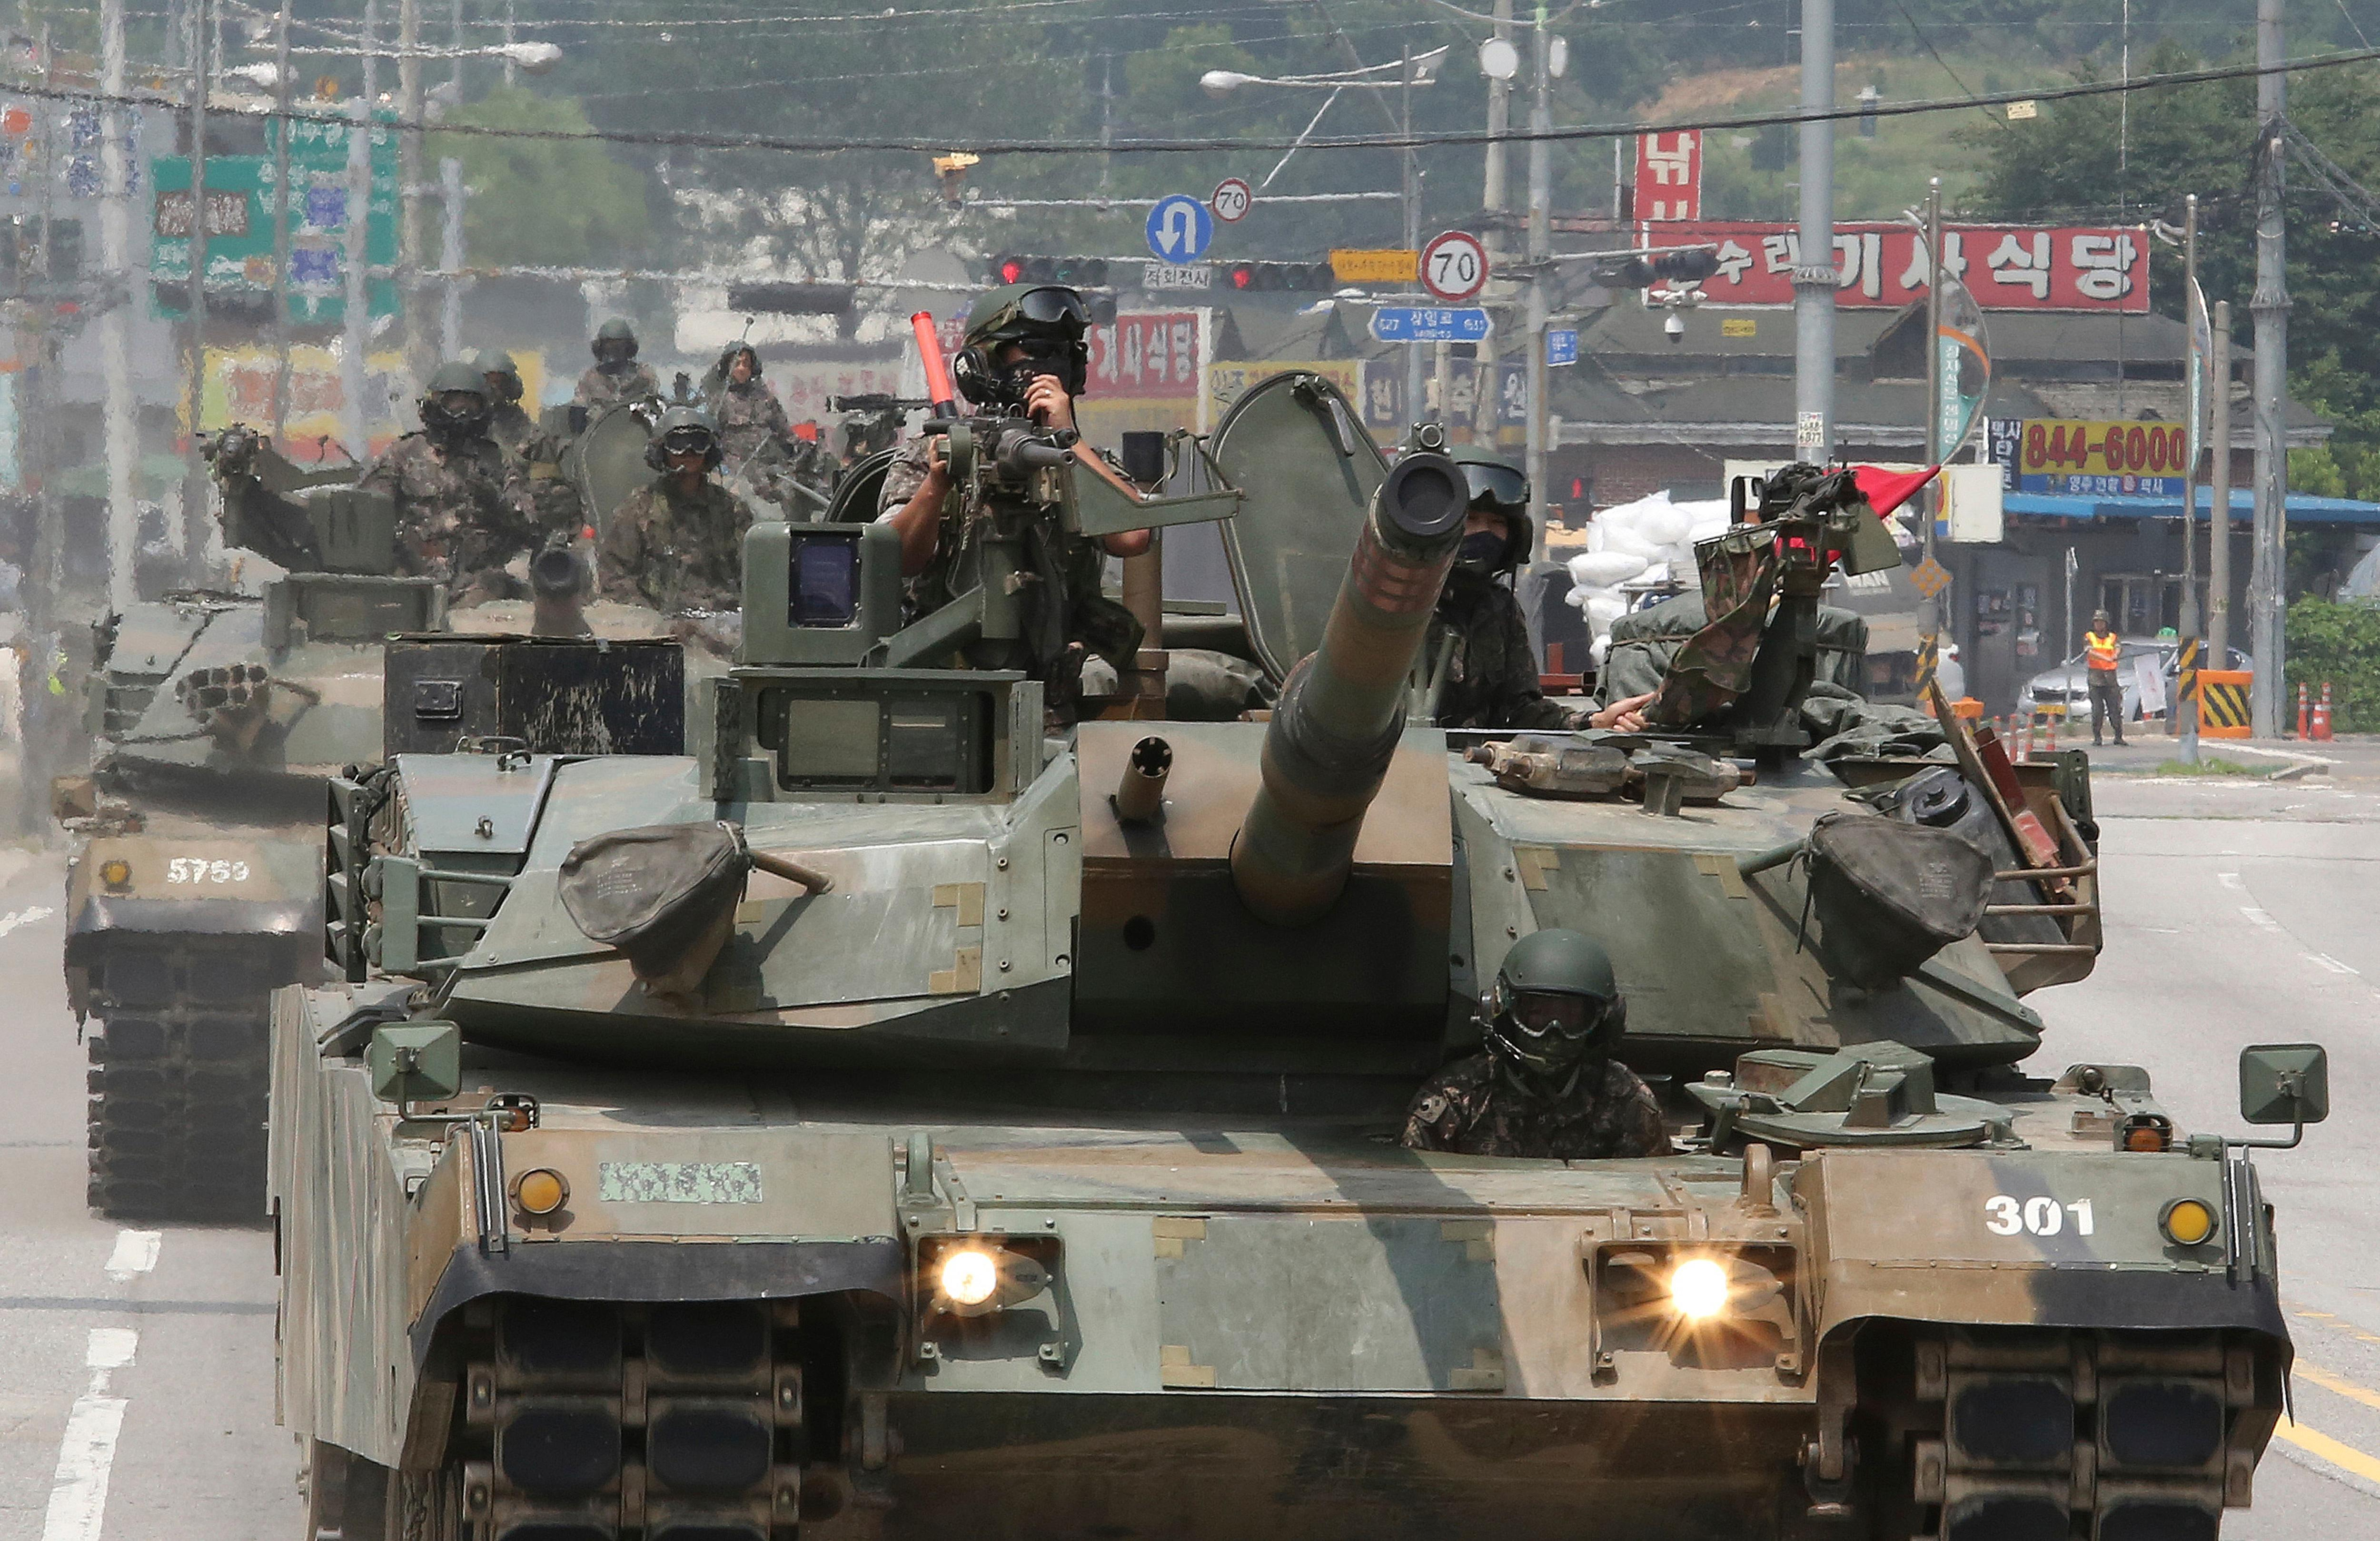 South Korea Army soldiers ride K-1 tanks during the annual exercise in Paju, South Korea, near the border with North Korea, Wednesday, July 5, 2017.  (AP Photo/Ahn Young-joon)